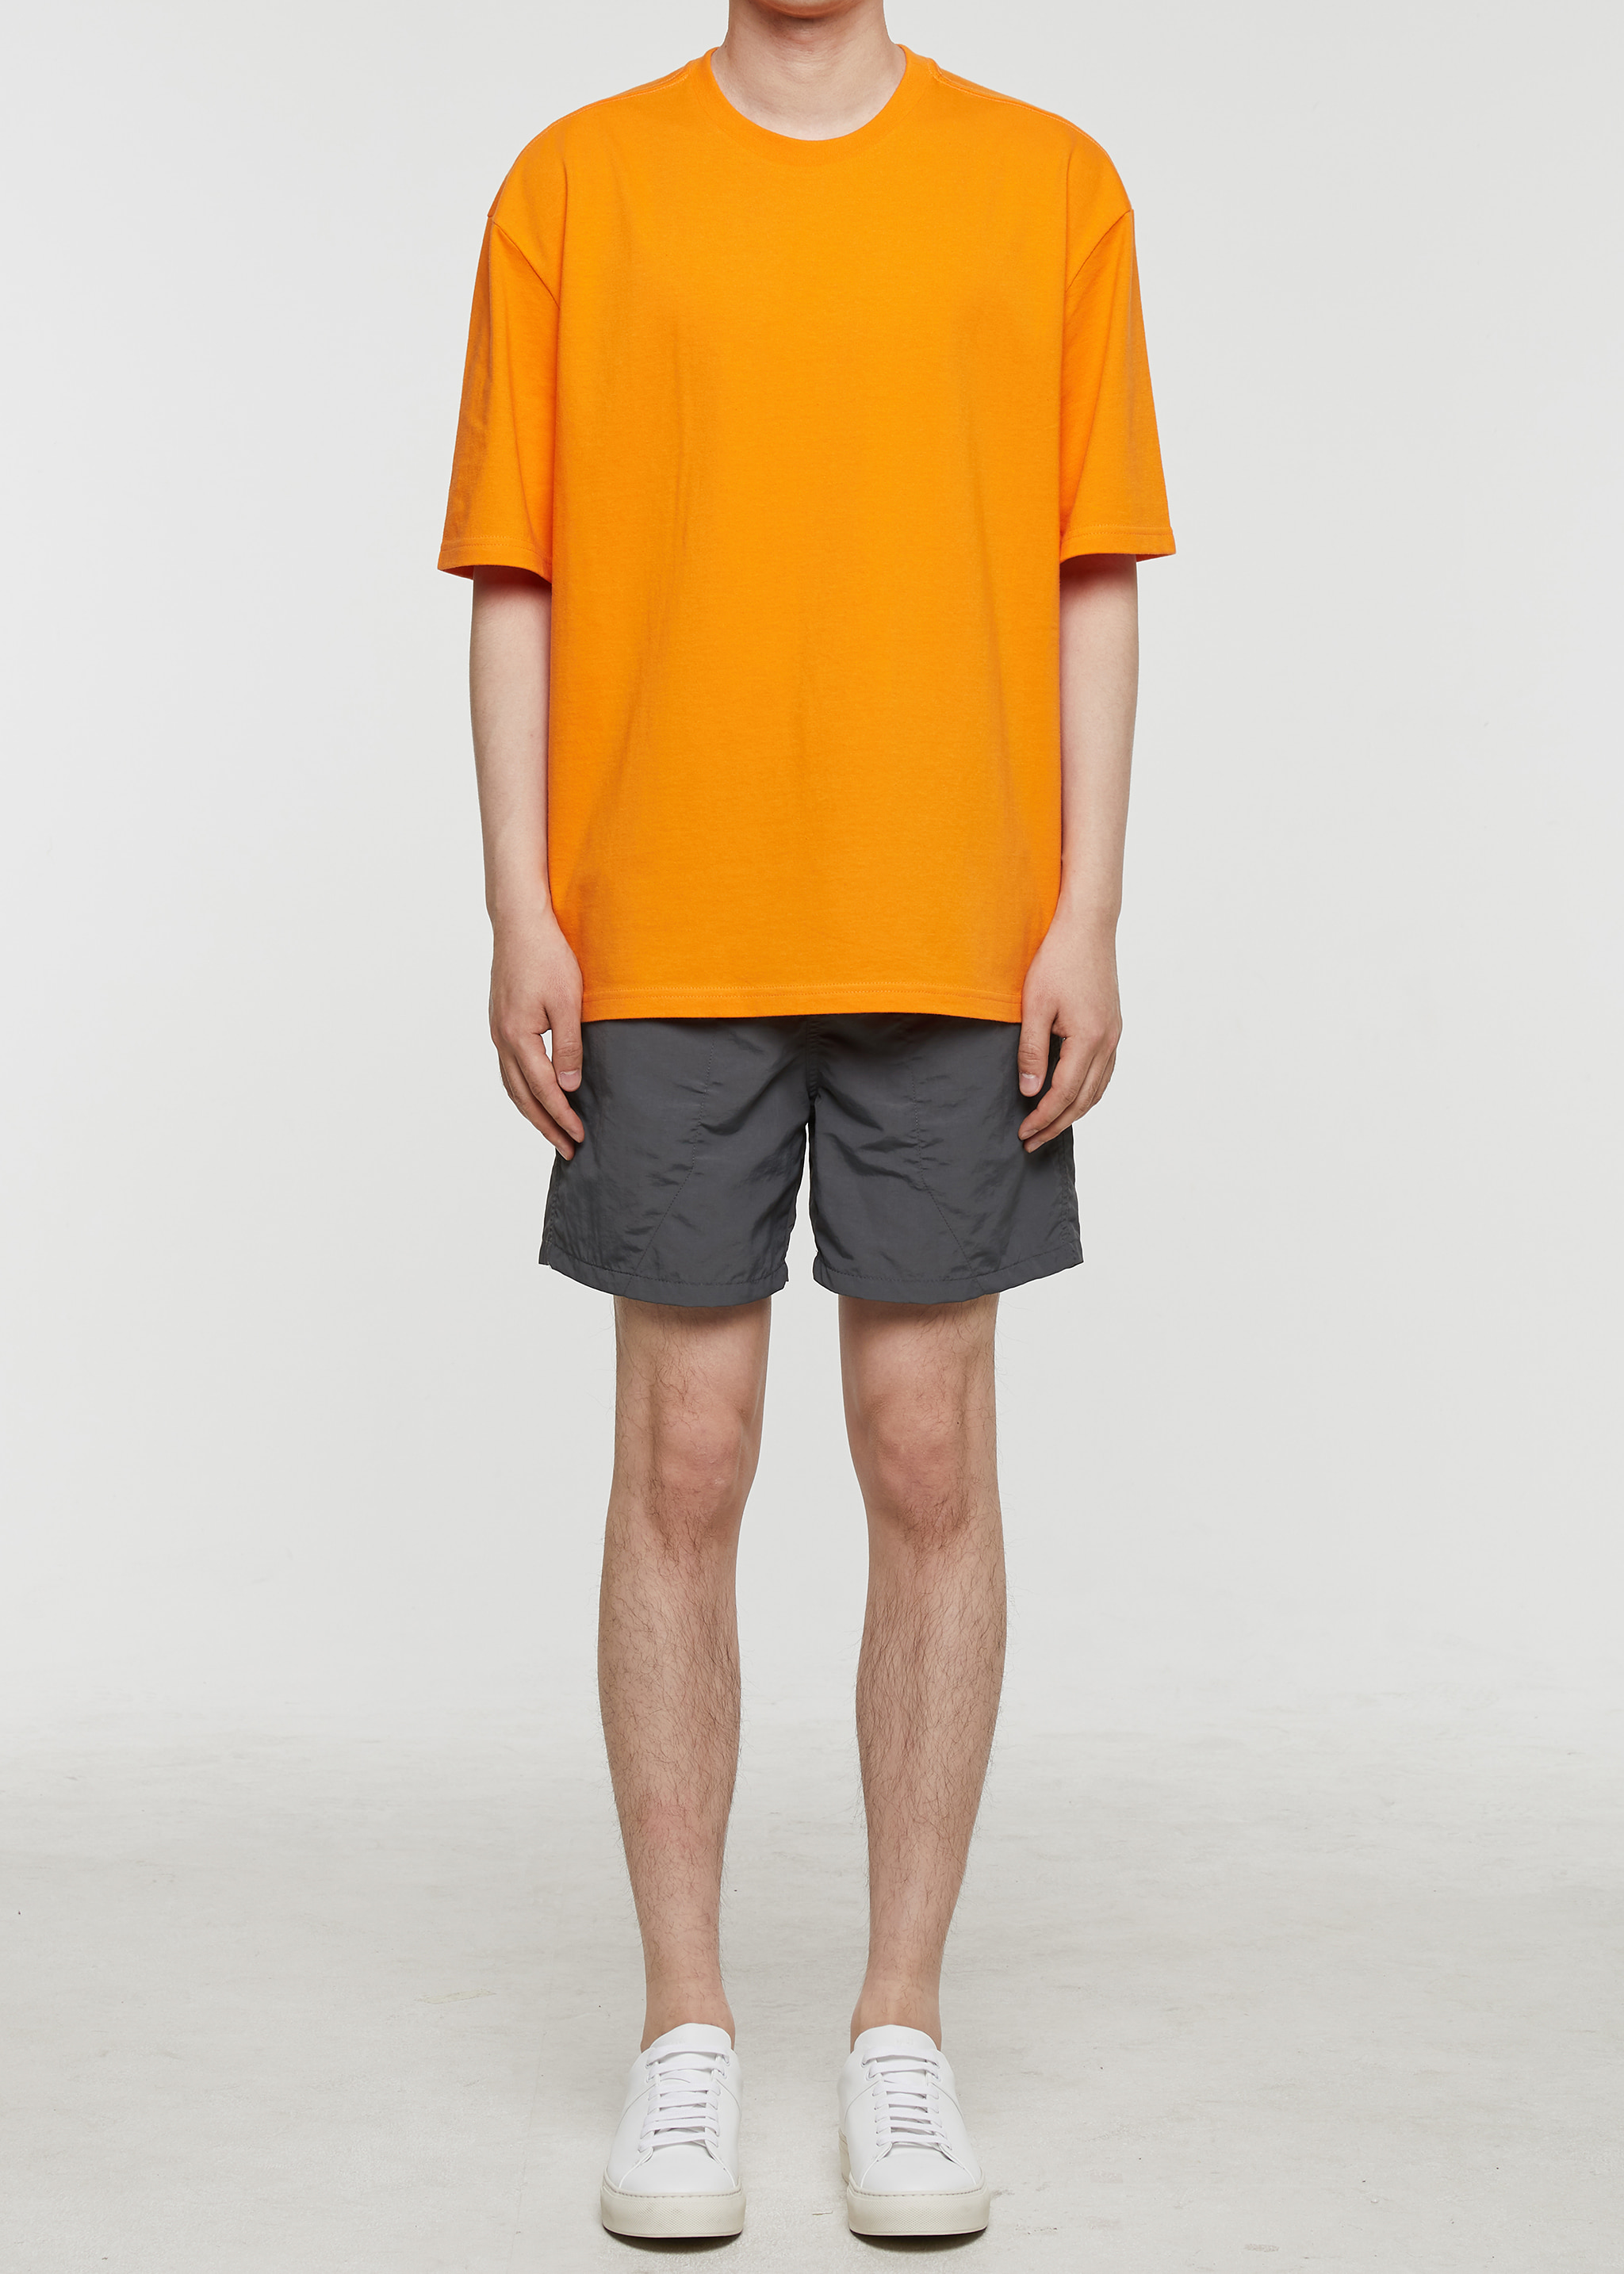 [3주년 감사세일] Errday T-shirts (Orange)